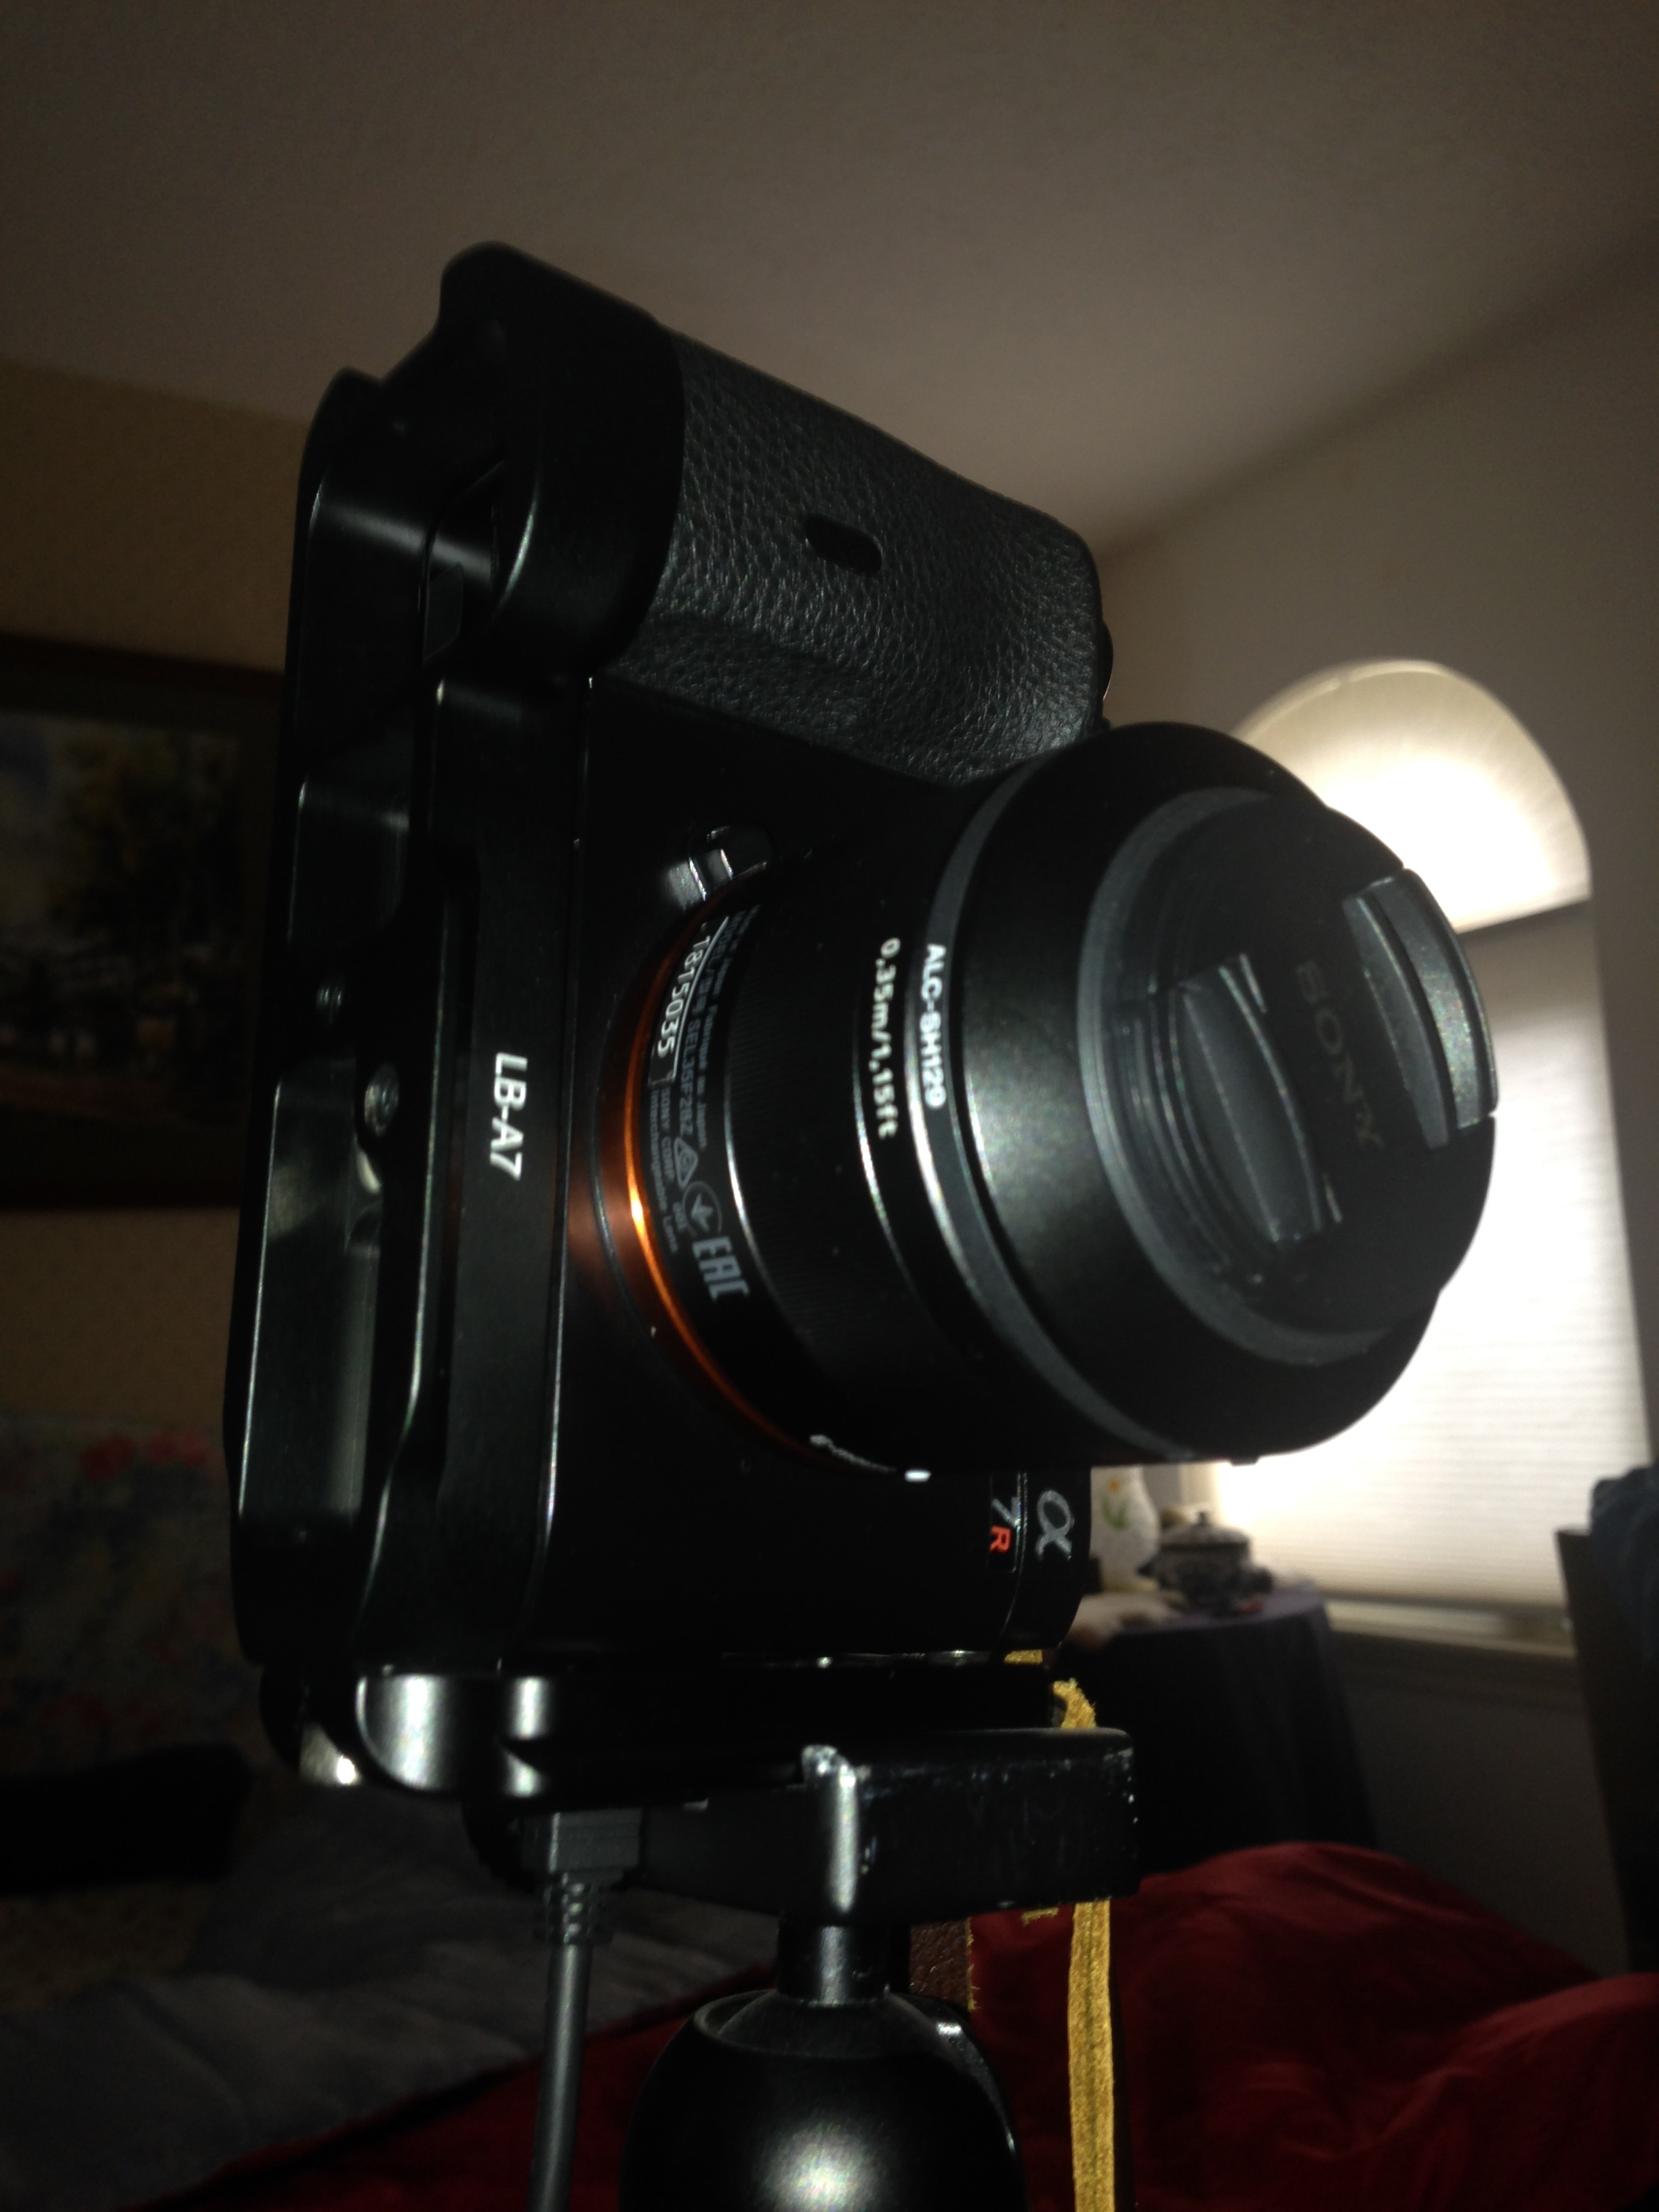 25 L Bracket For A7 And A7r Sony Alpha Full Frame E Mount Talk Plate Kamera A7s View Original Size With This